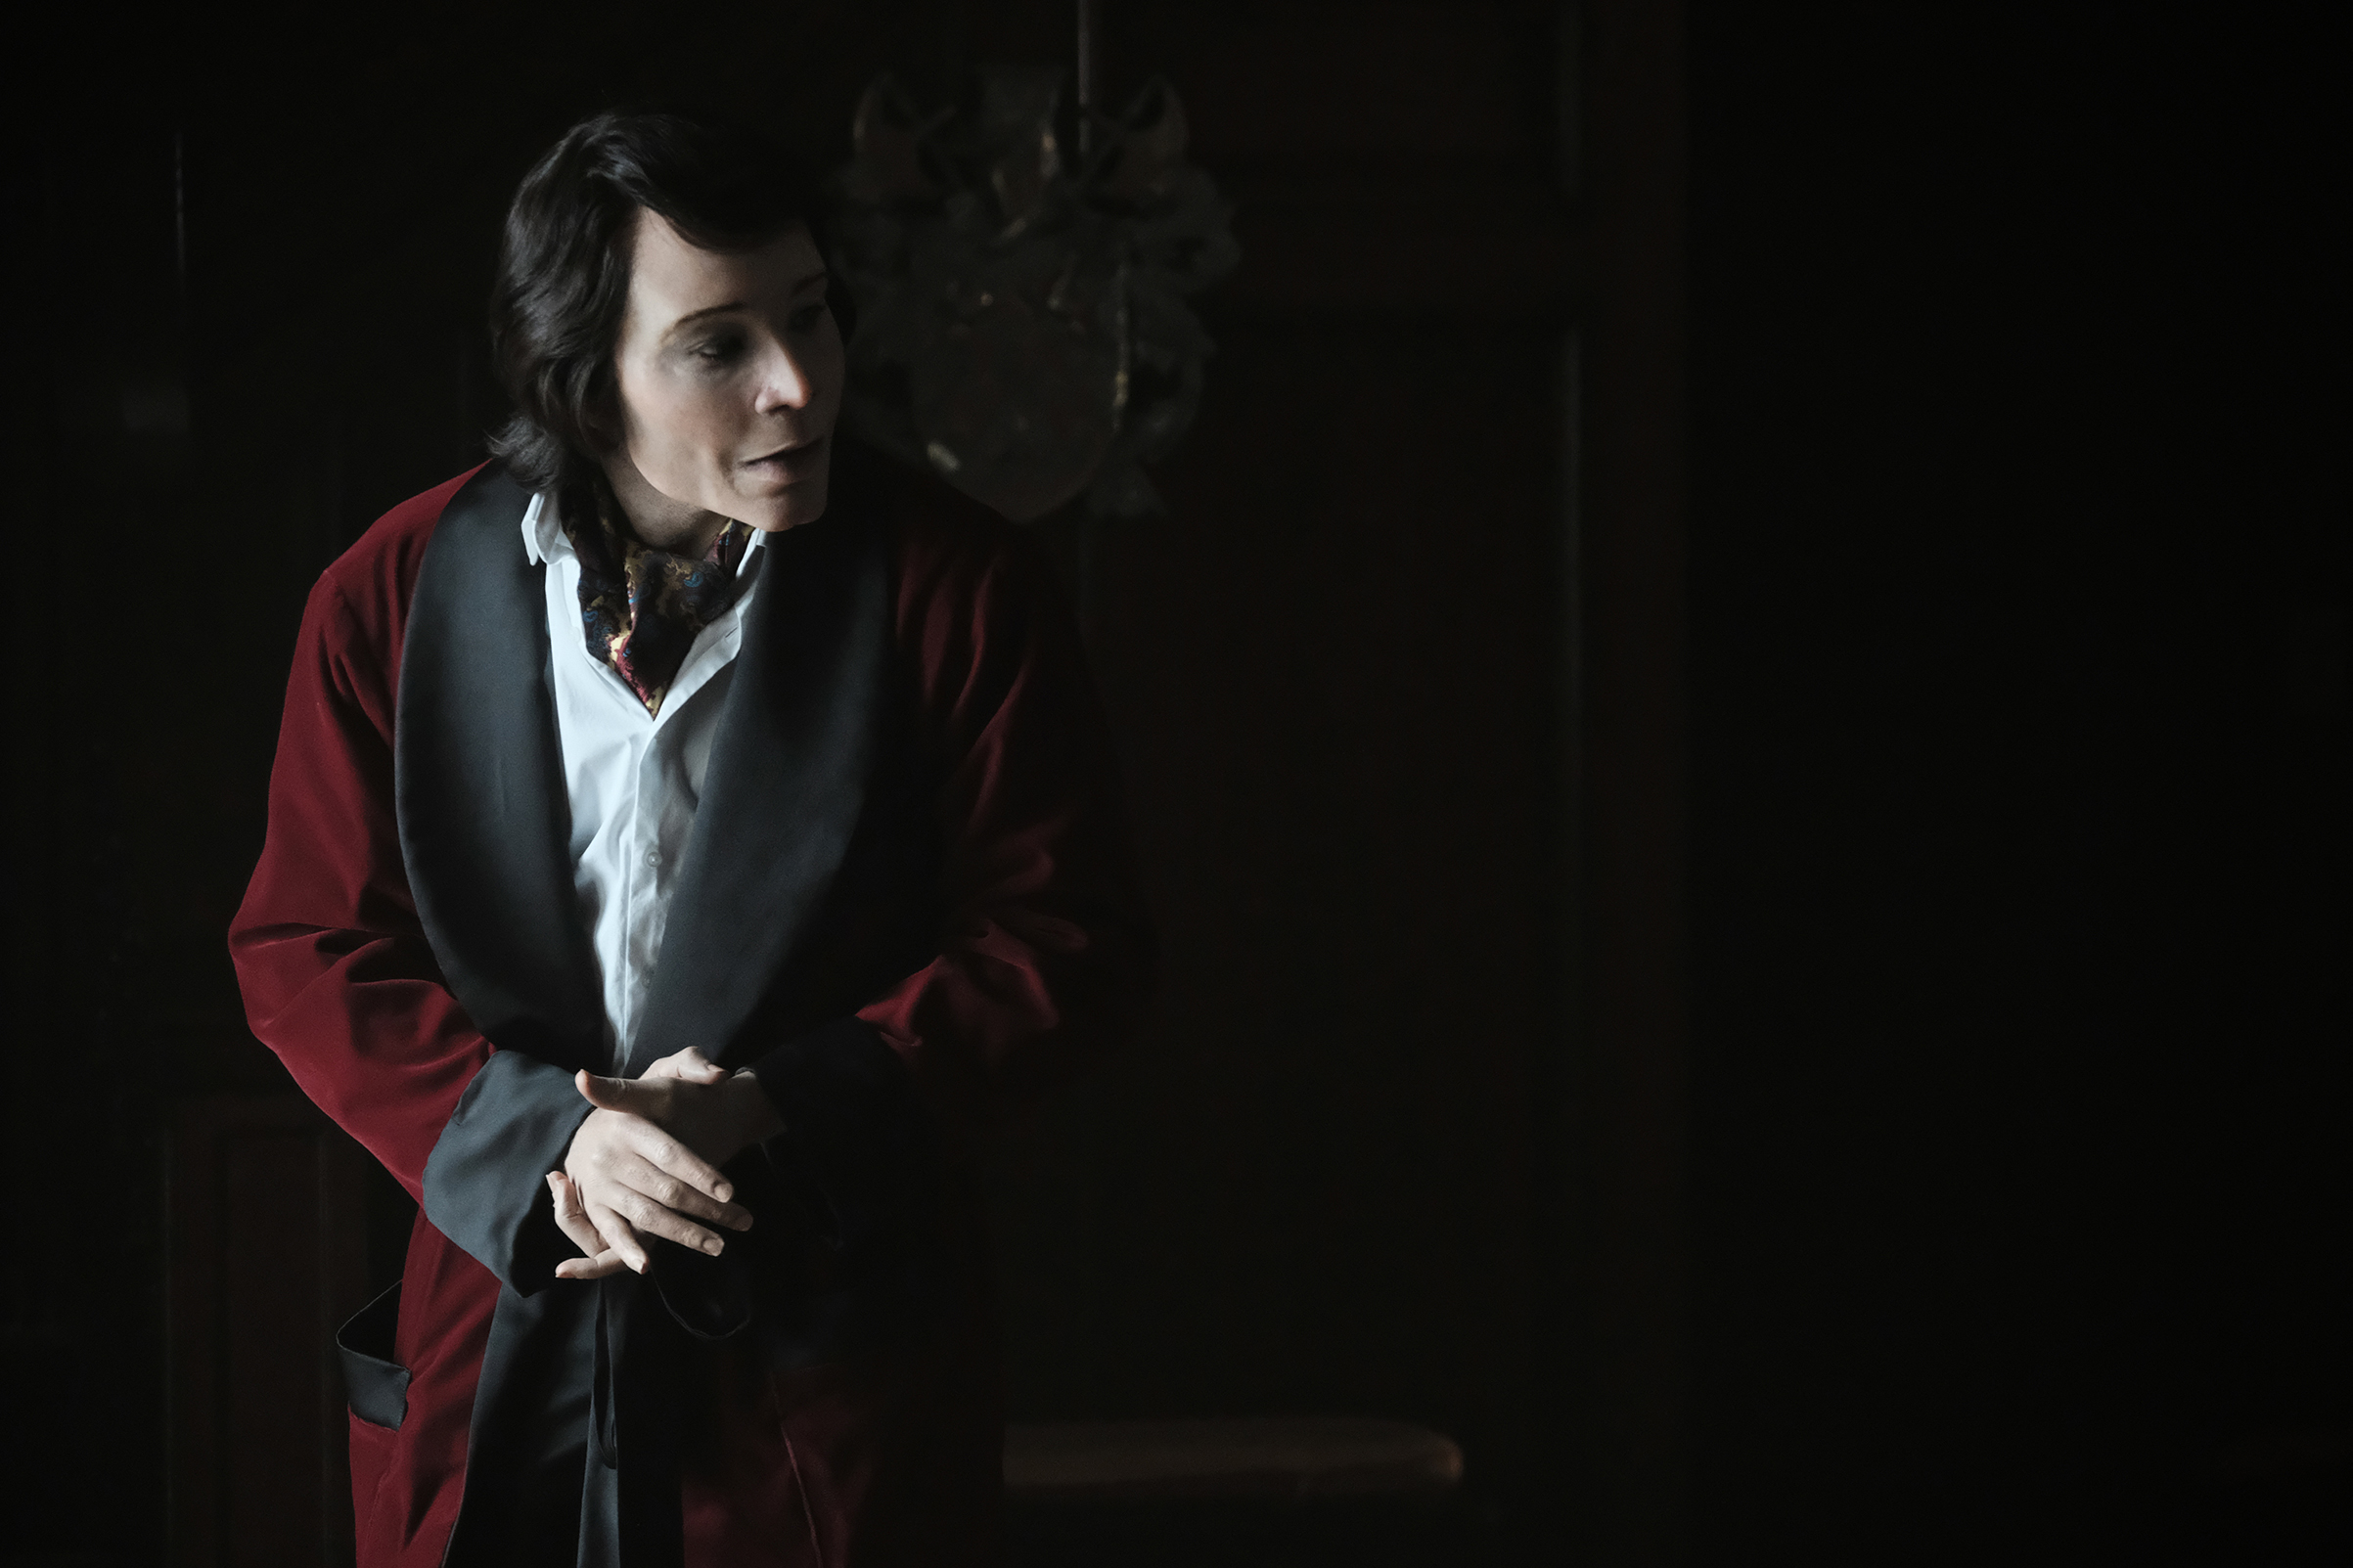 Teddy Perkins as Himself in 'Atlanta'.